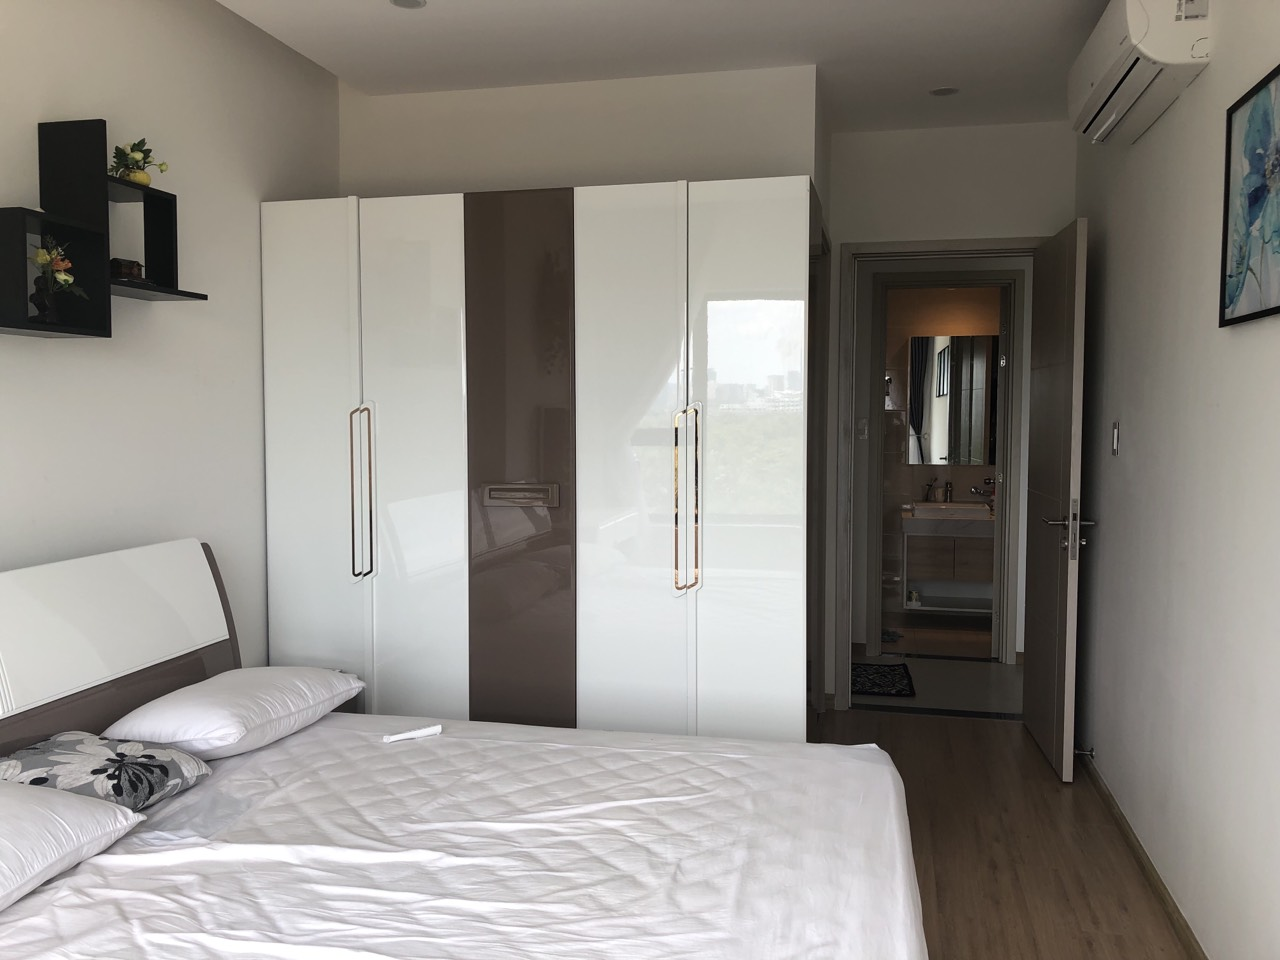 apartment for rent in district 2 hcmc new city apartment for rent in district 2 hcmc D224864(5)